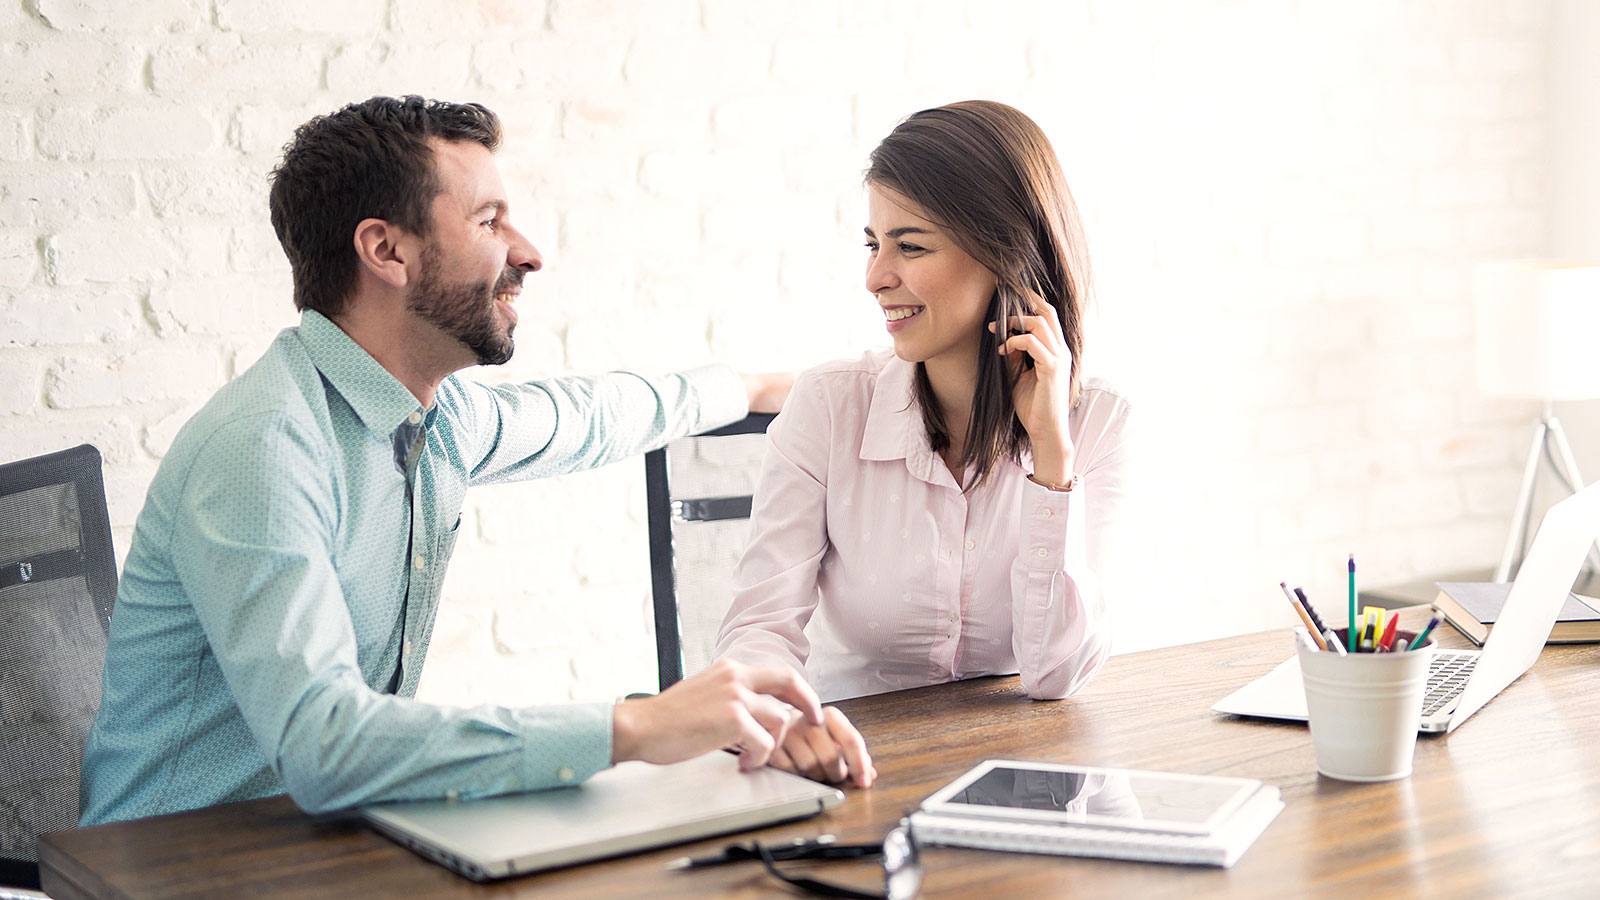 If you work in this industry you are more likely to date your coworker